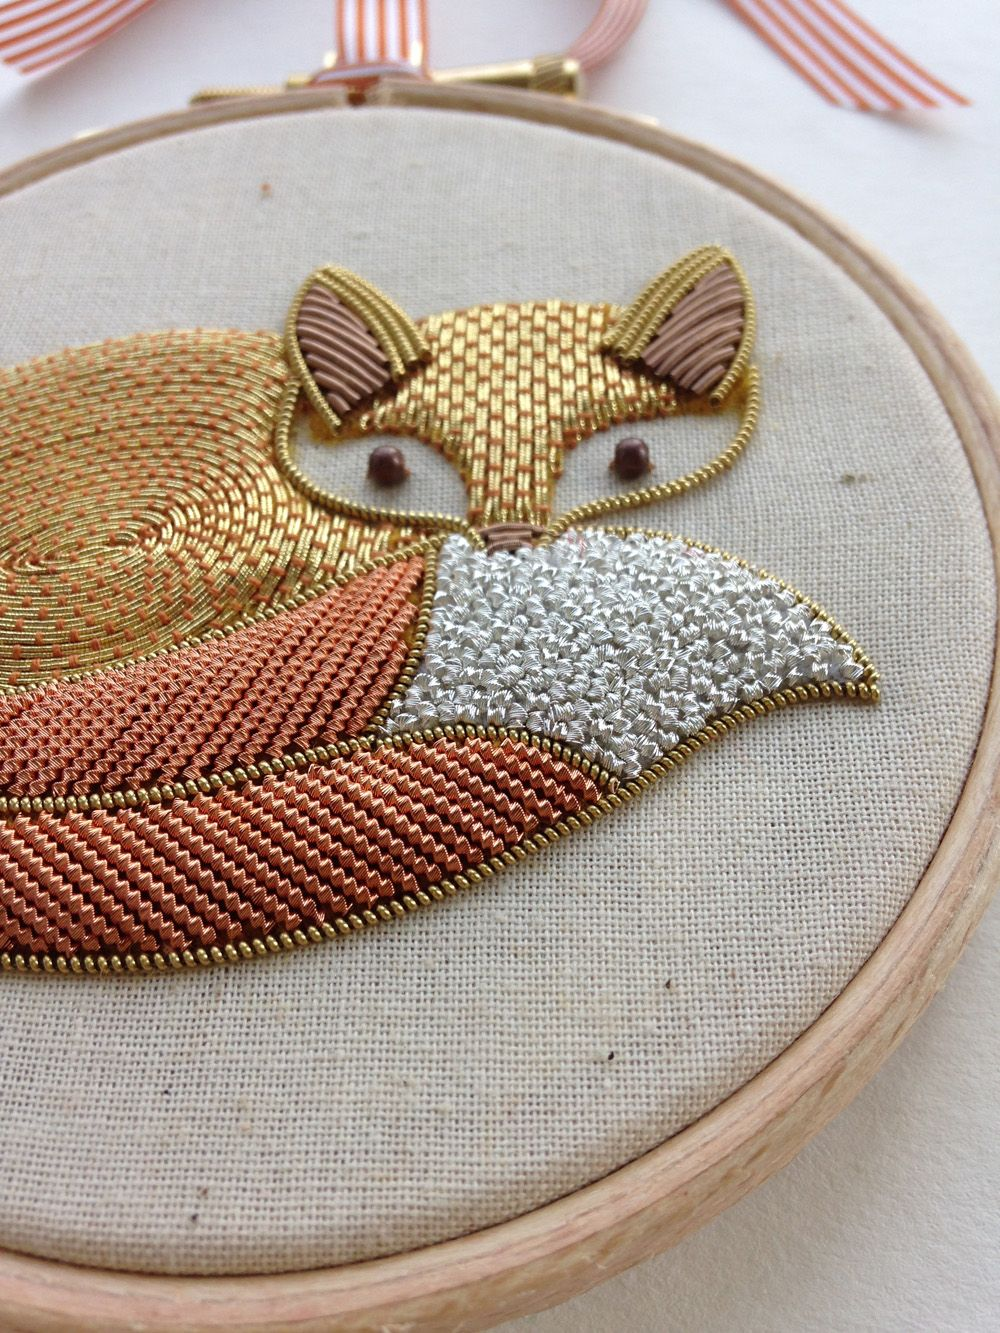 Metalwork fox embroidery looks like bo gorgeous for the home metalwork fox embroidery looks like bo gorgeous fox embroiderybead embroidery patternsbeaded bankloansurffo Images